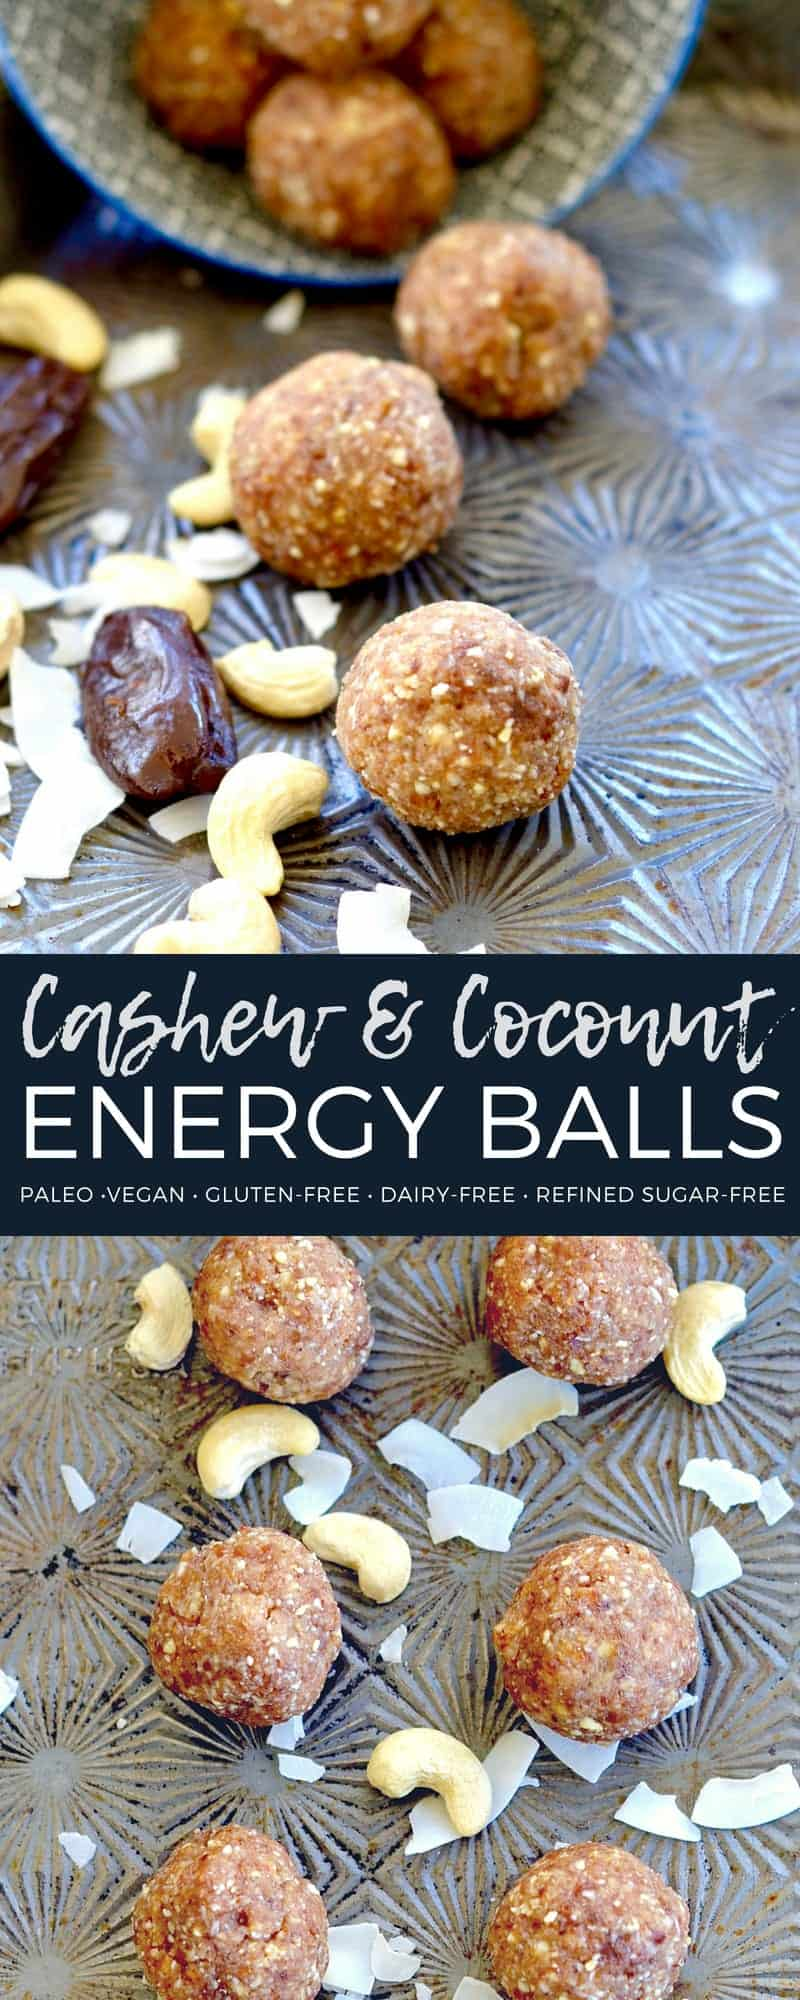 These Cashew & Coconut Energy Balls are made with only SIX ingredients and come together in 5 minutes! They the perfect healthy snack recipe to bring with you to the park or pool this summer! #paleo #vegan #glutenfree #grainfree #healthysnack #eneryballs #recipe